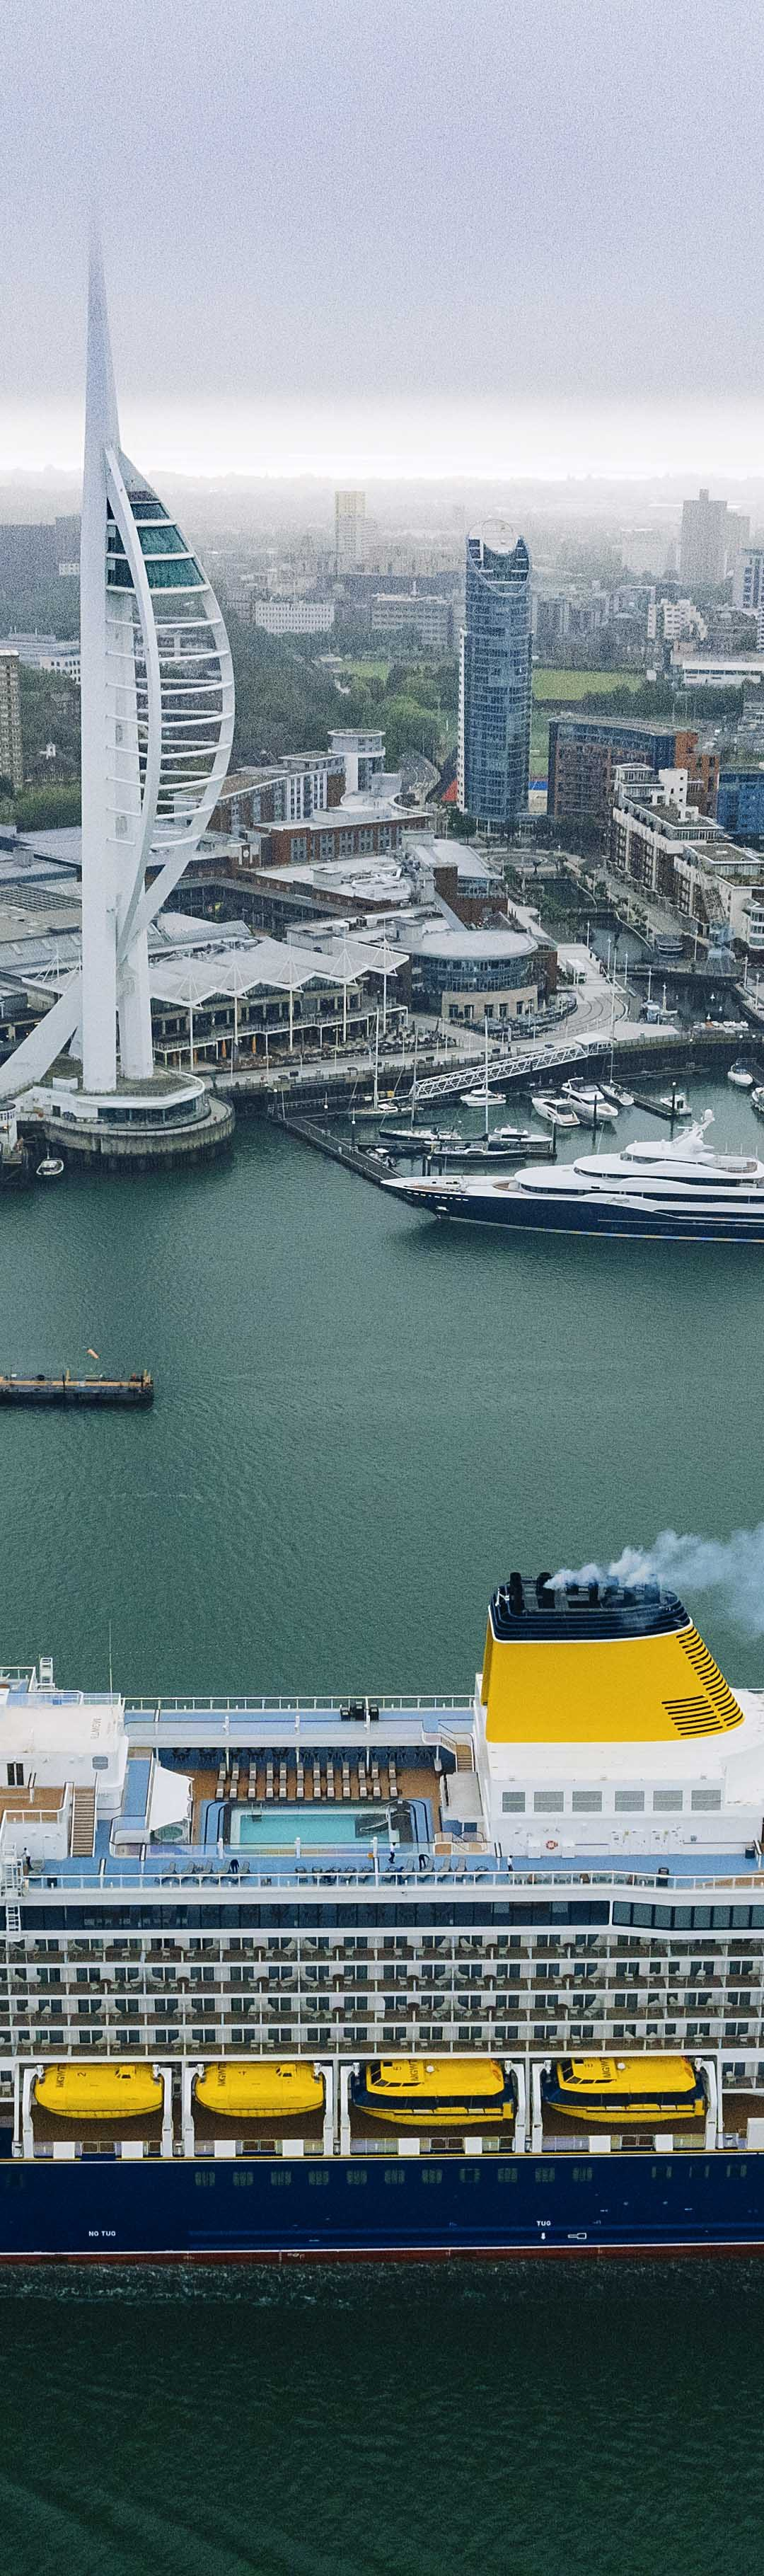 Spirit of Adventure sails into Portsmouth in preparation for city's first naming ceremony